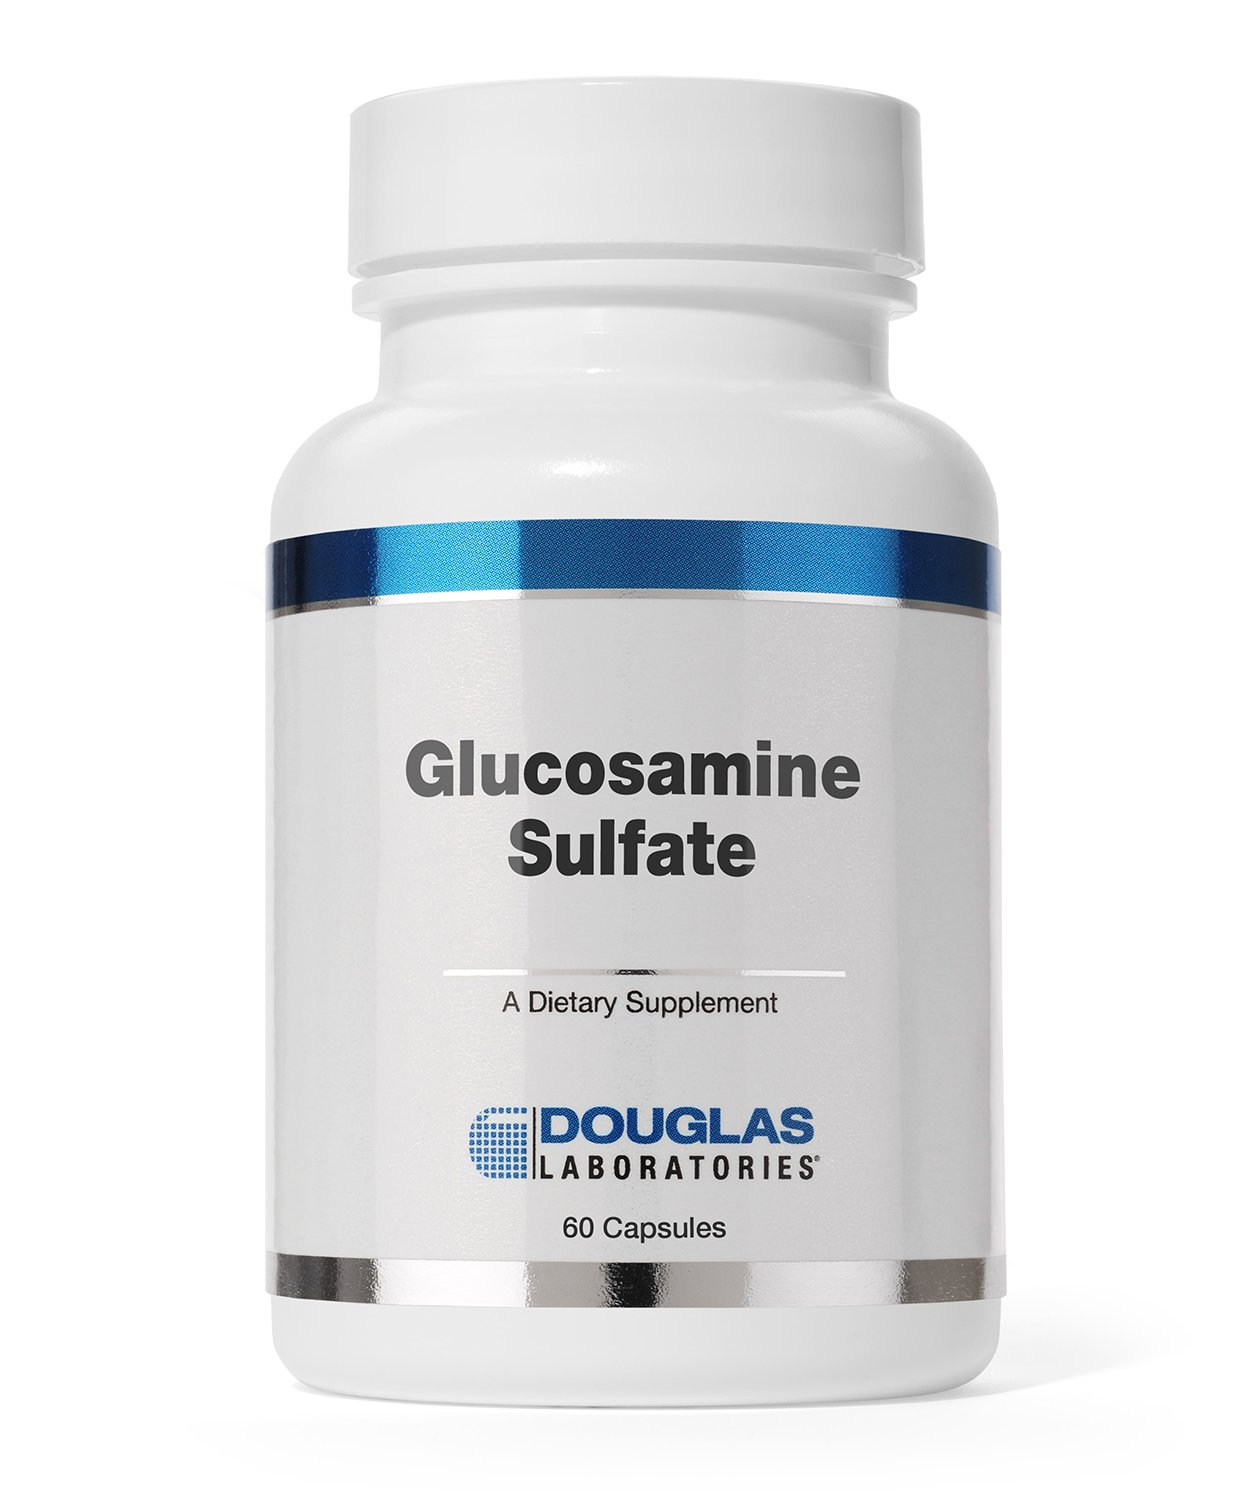 Douglas Laboratories® - Glucosamine Sulfate 500 mg. - Absorbable Formula Supports Synthesis and Maintenance of Connective Tissue* - 60 Capsules by Douglas Laboratories (Image #1)